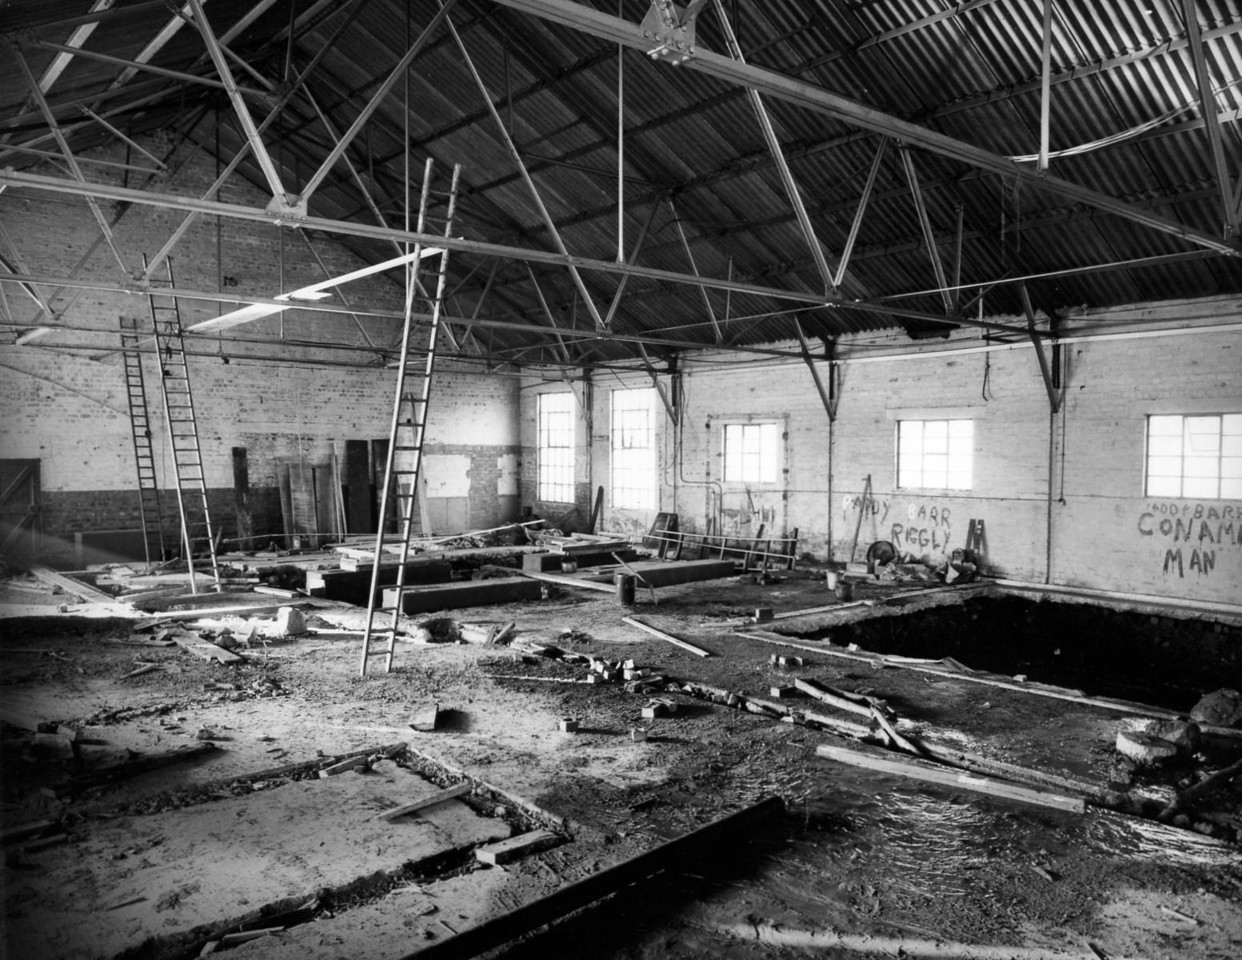 T018 	Work on progress inside boilerhouse    30/3/1963